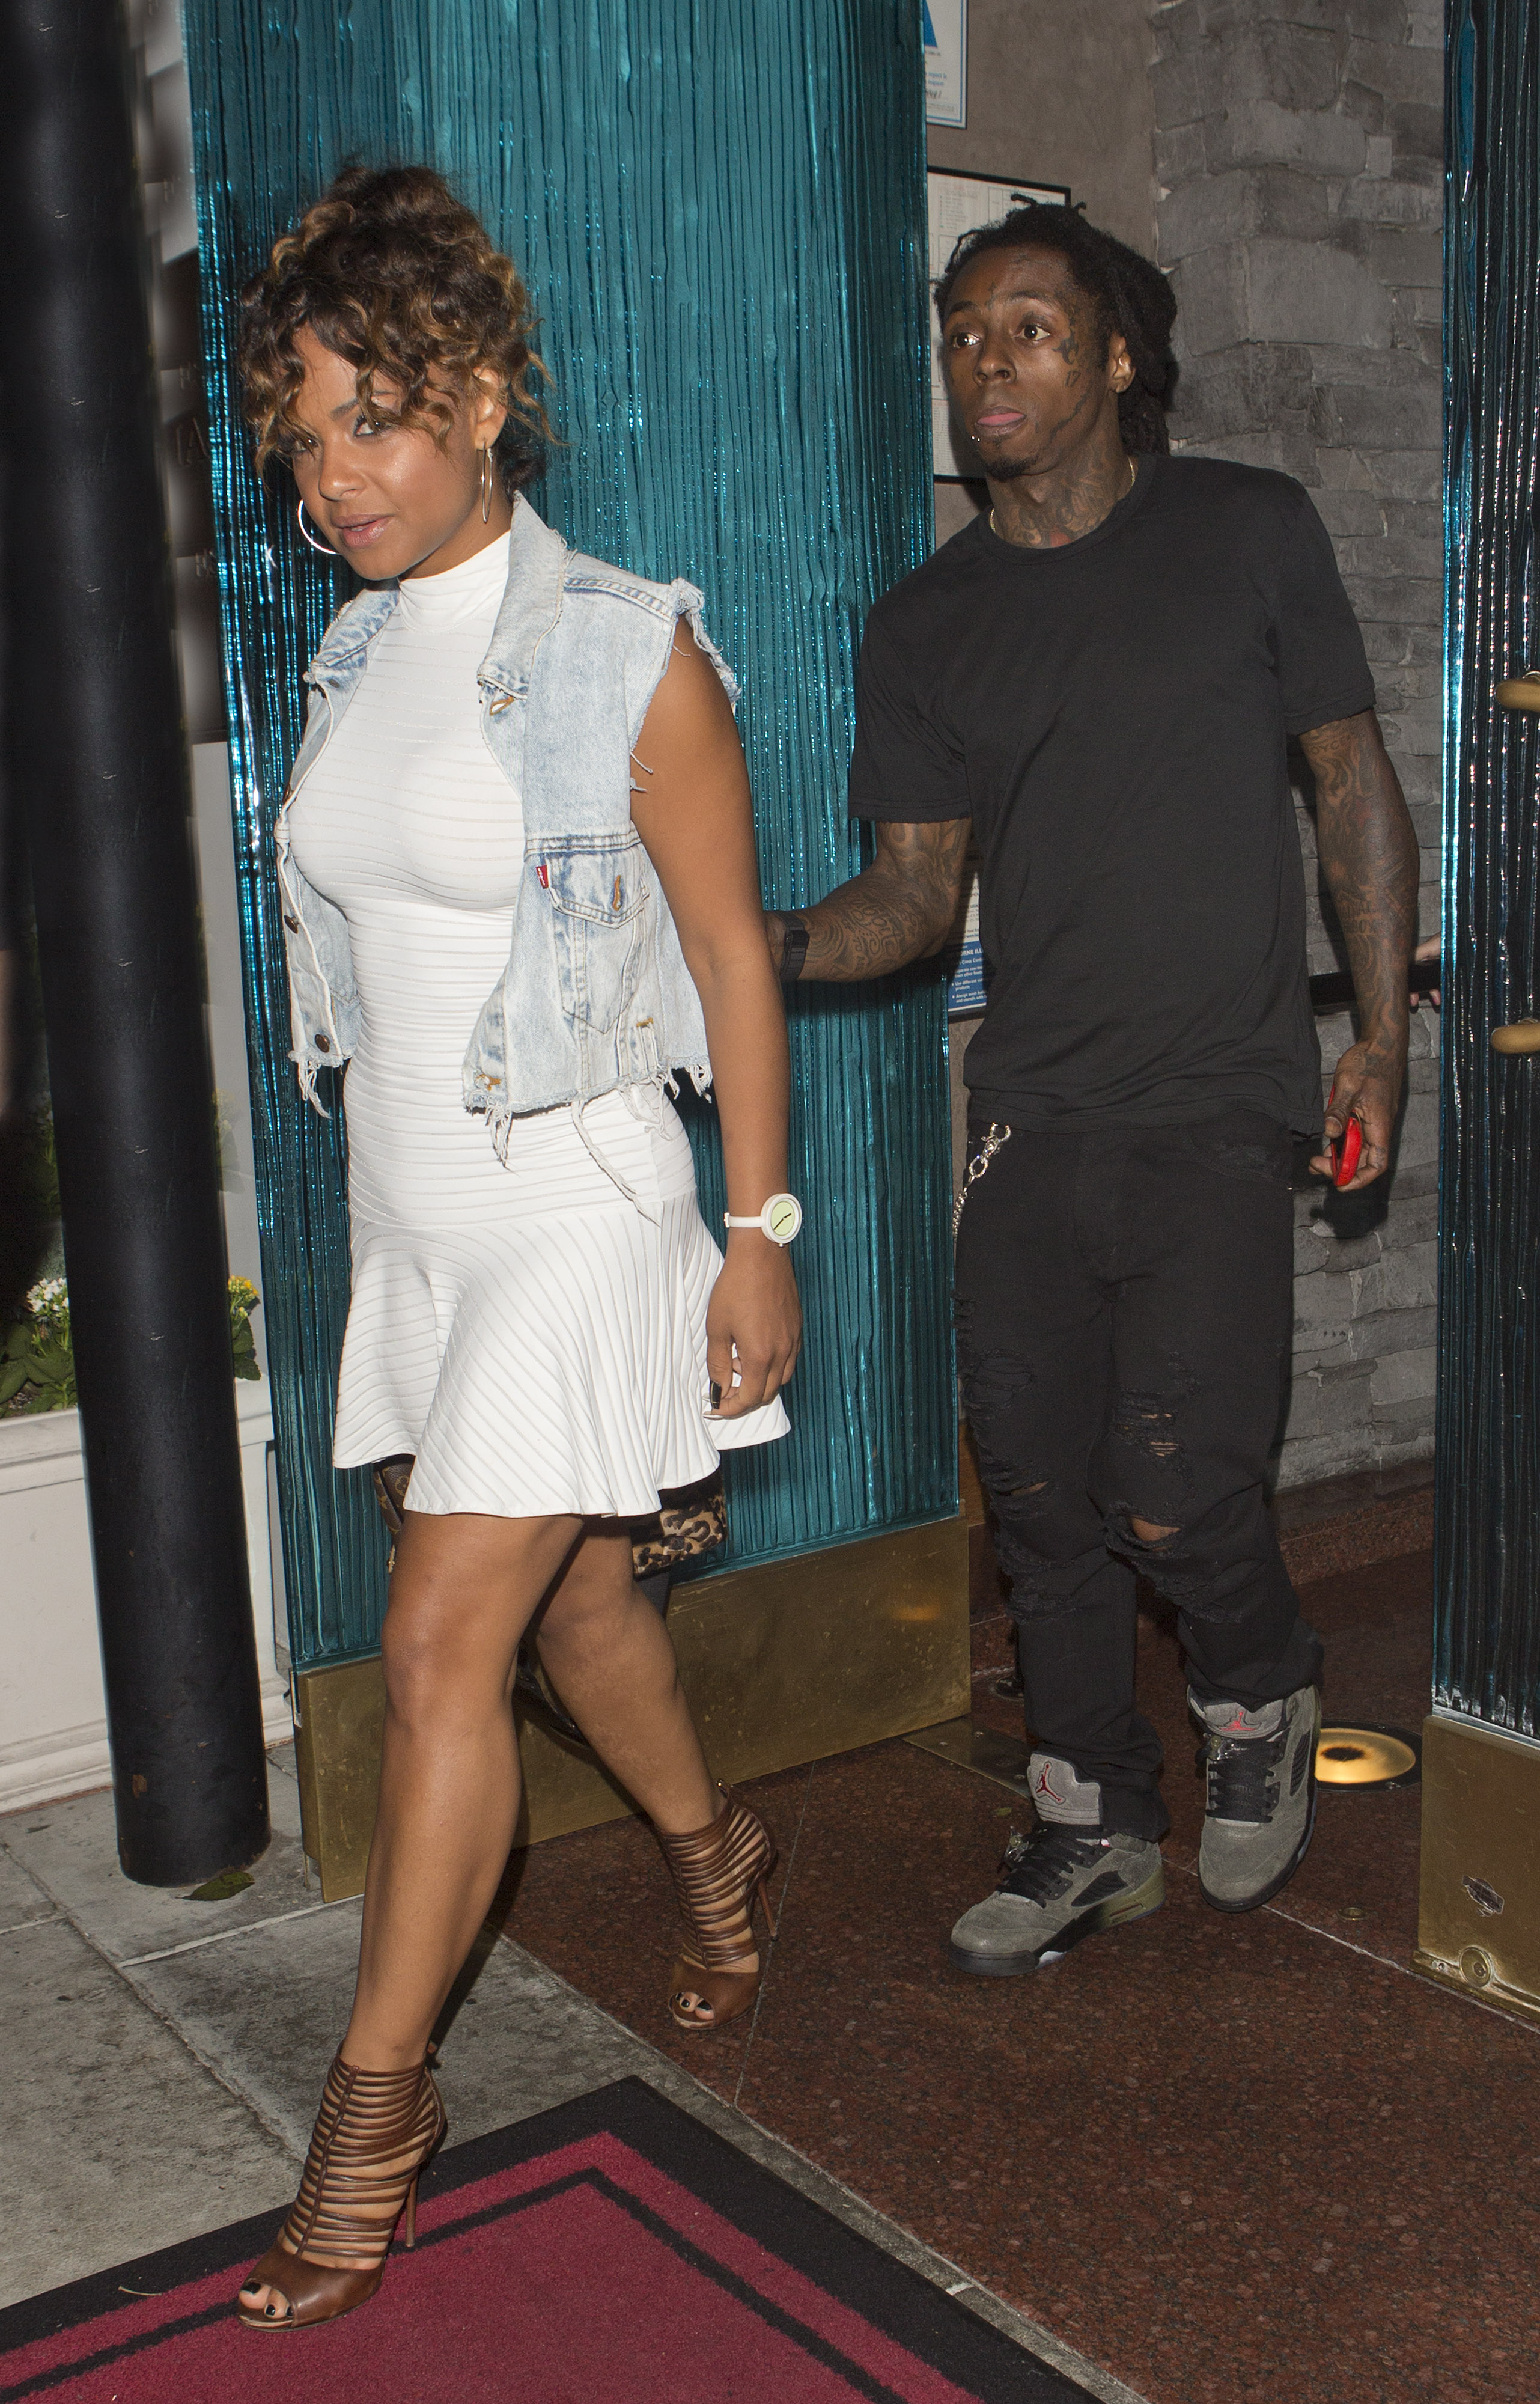 Rapper Lil Wayne and fellow singer Christina Milian were seen leaving Mastros Steakhouse restaurant in Beverly Hills, CA